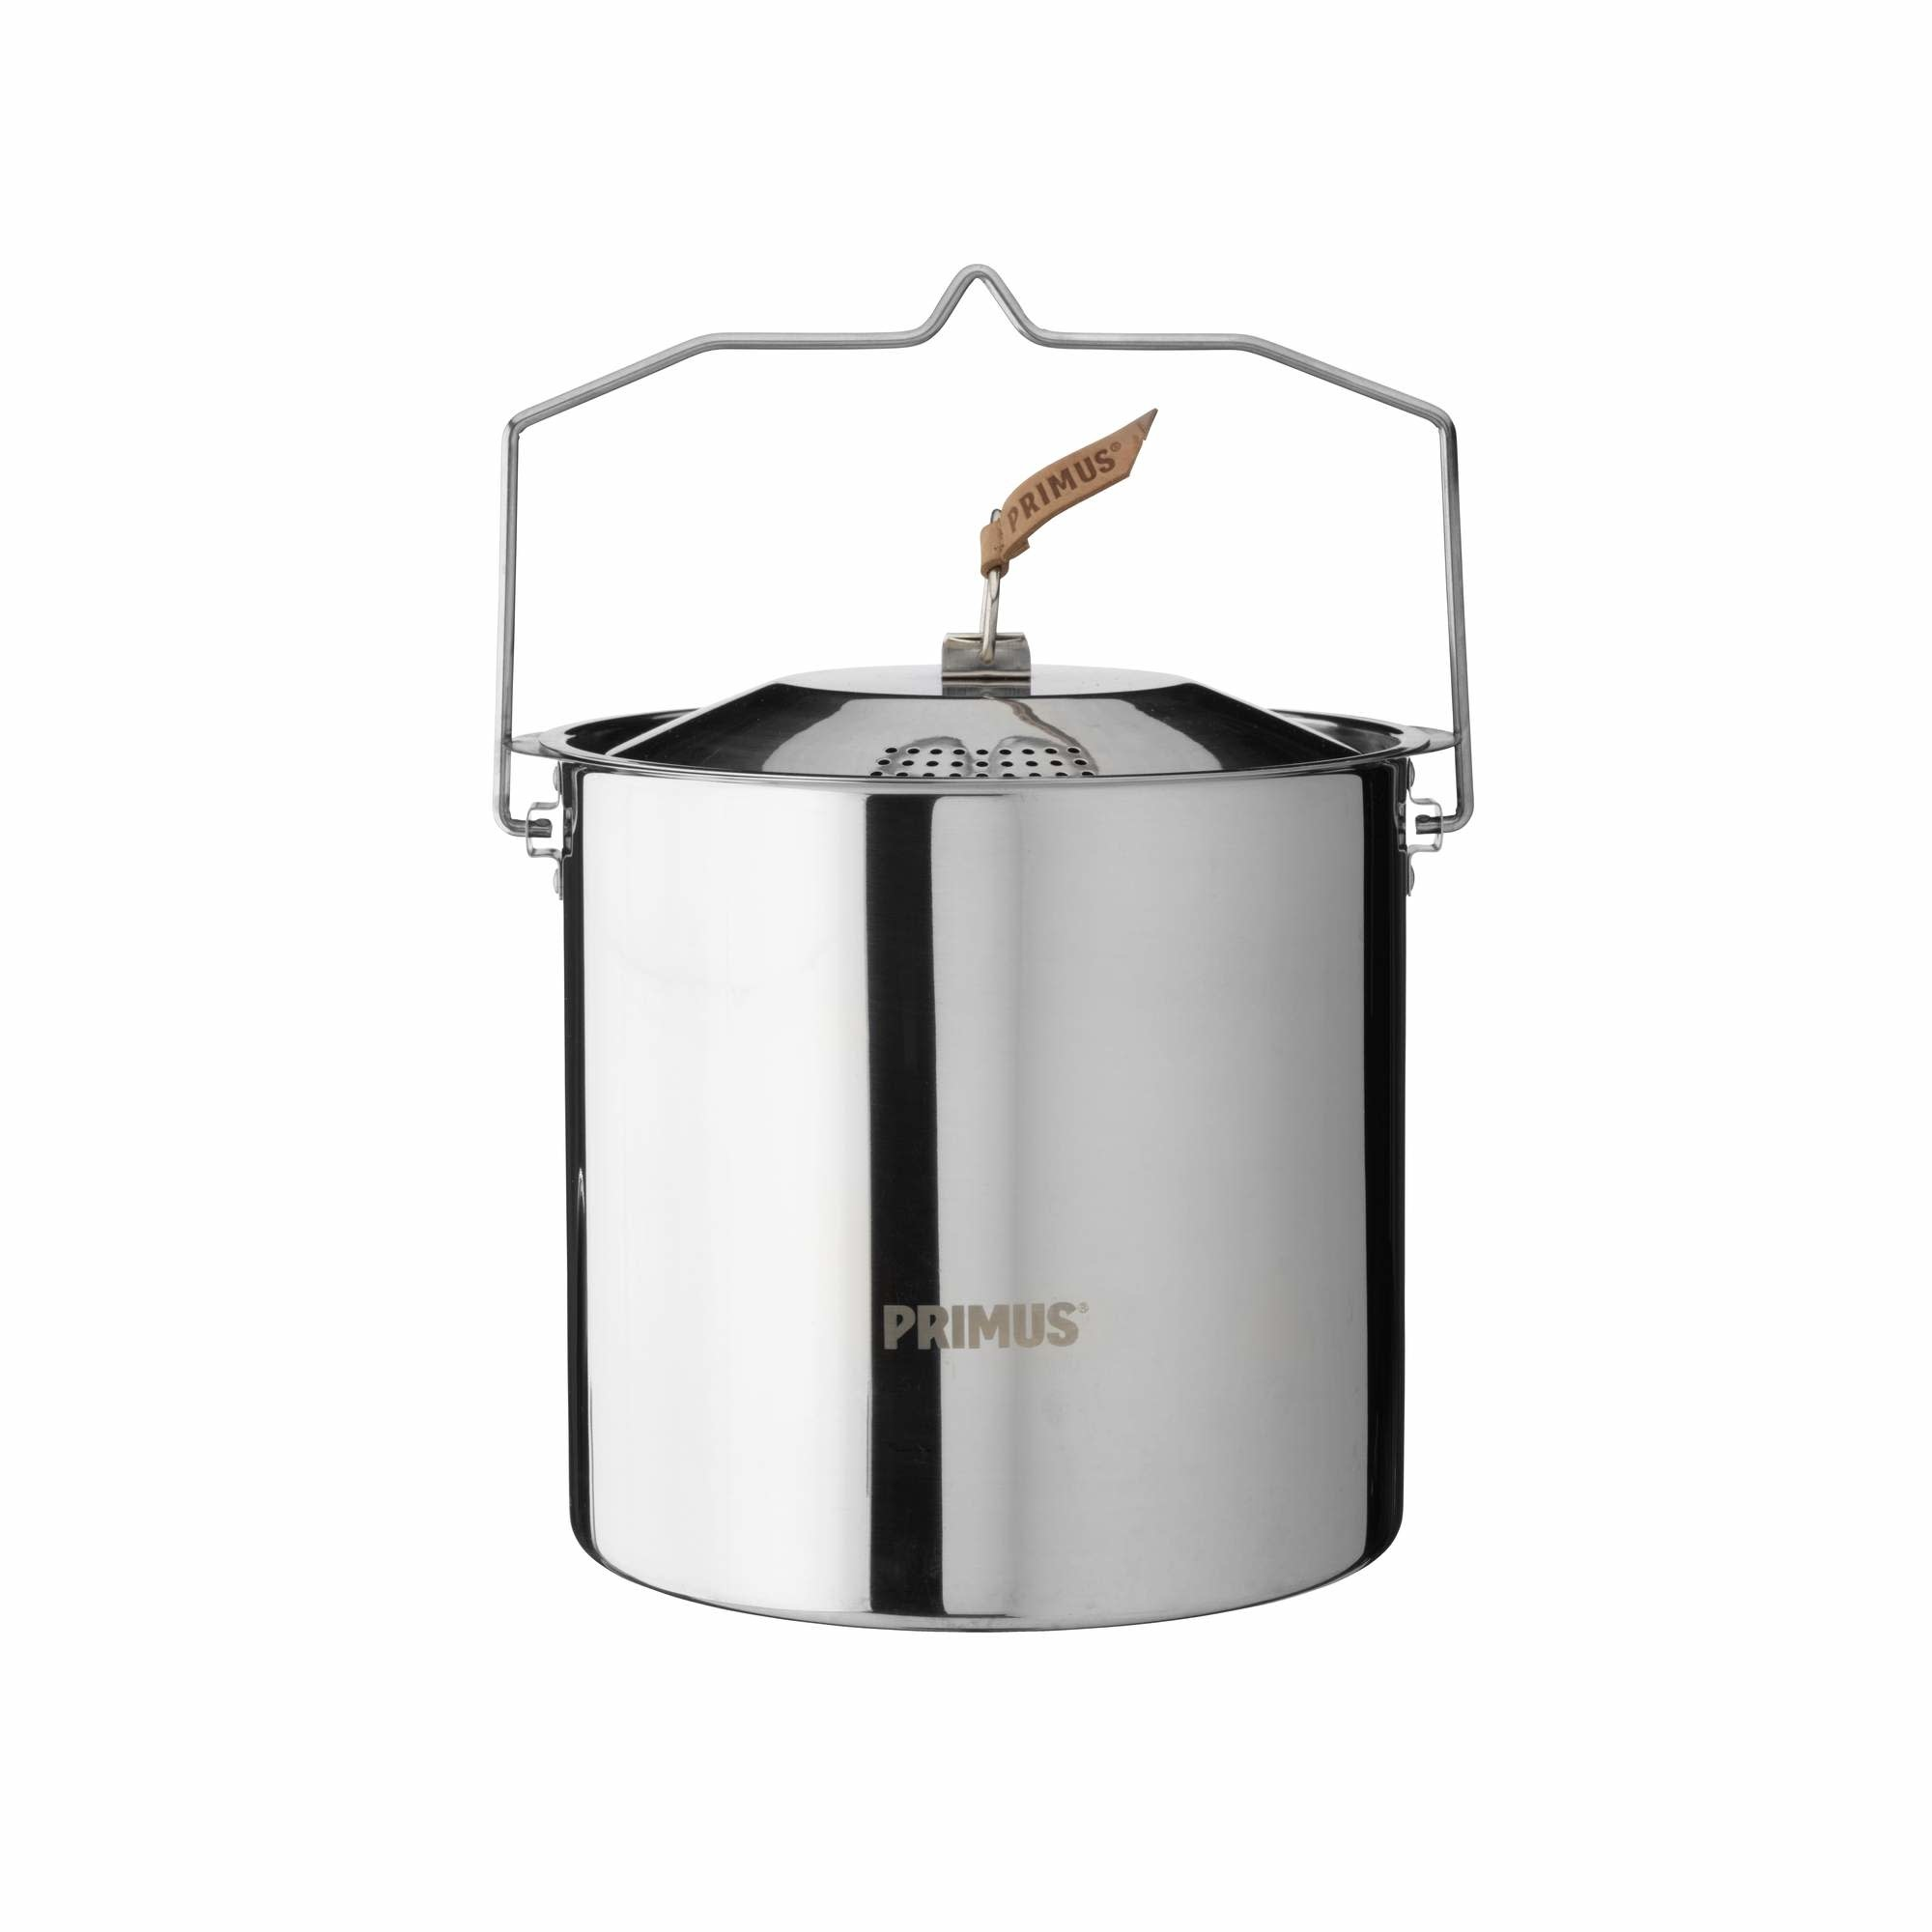 Primus CampFire Pot Stainless Steel - 5L